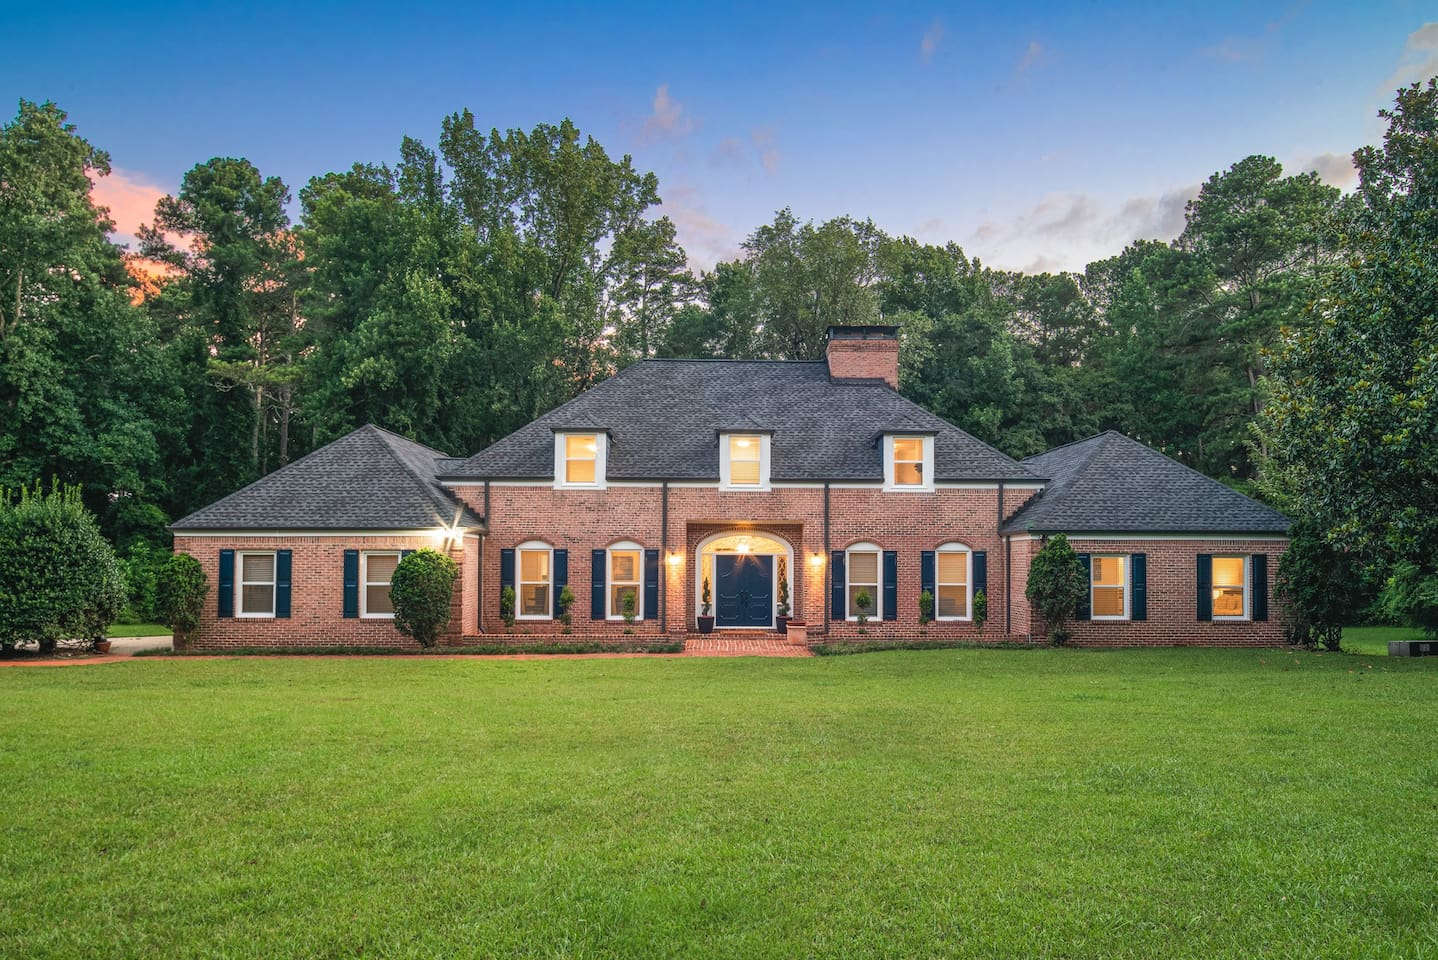 Stunning Curb Appeal, Two-Story Mansion sitting on 22 Acres of land